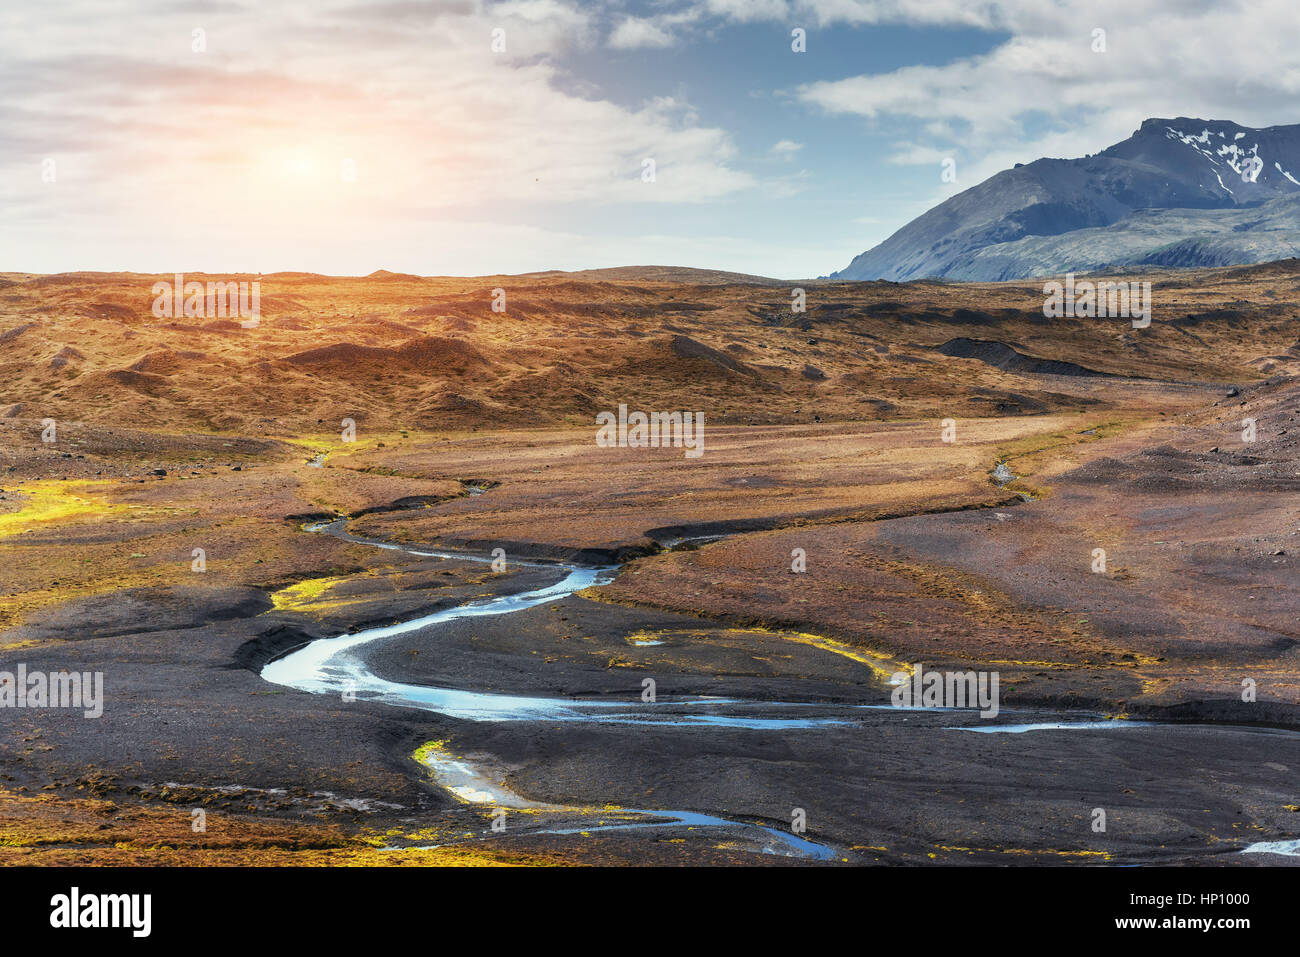 The beautiful landscape of mountains and rivers in Iceland. - Stock Image